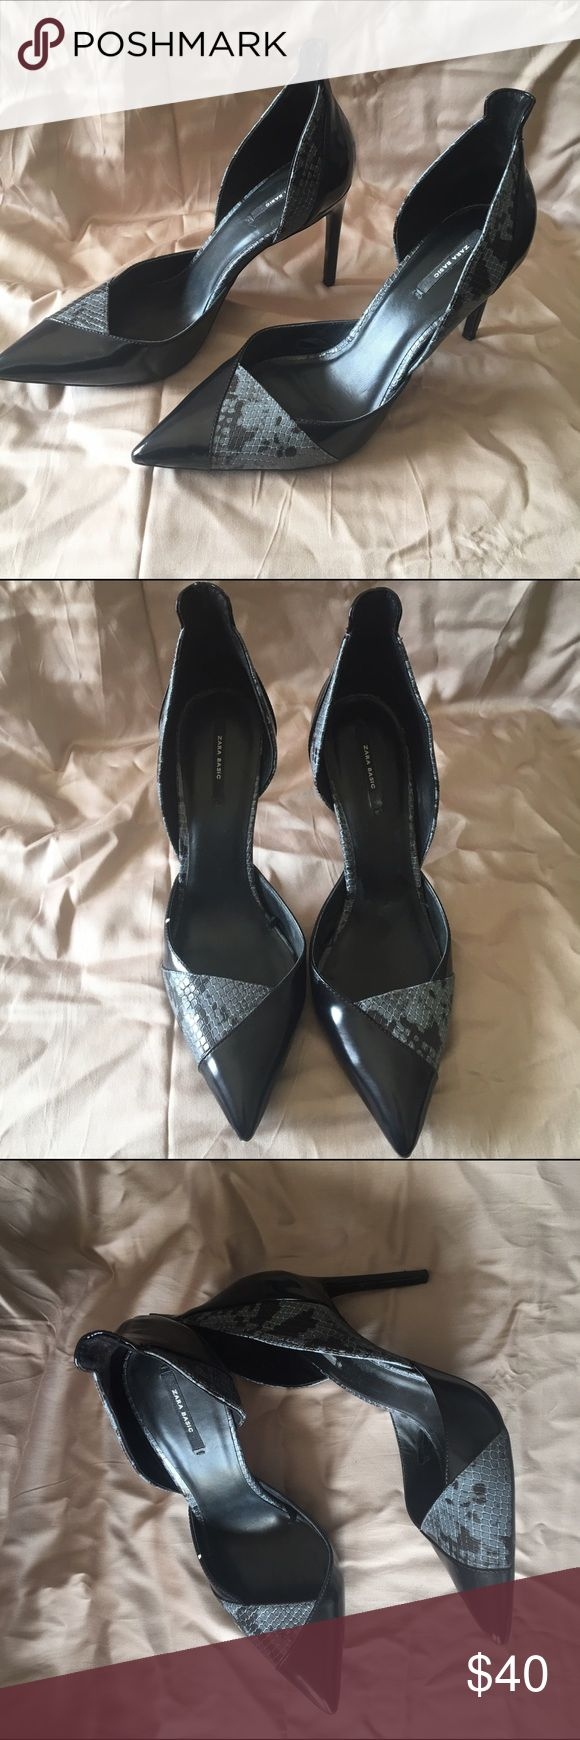 """Zara Black and grey python print court shoes sz 41 Zara Basic Black leather with grey python print inserts. 4"""" heel with high back Zara Shoes Heels"""